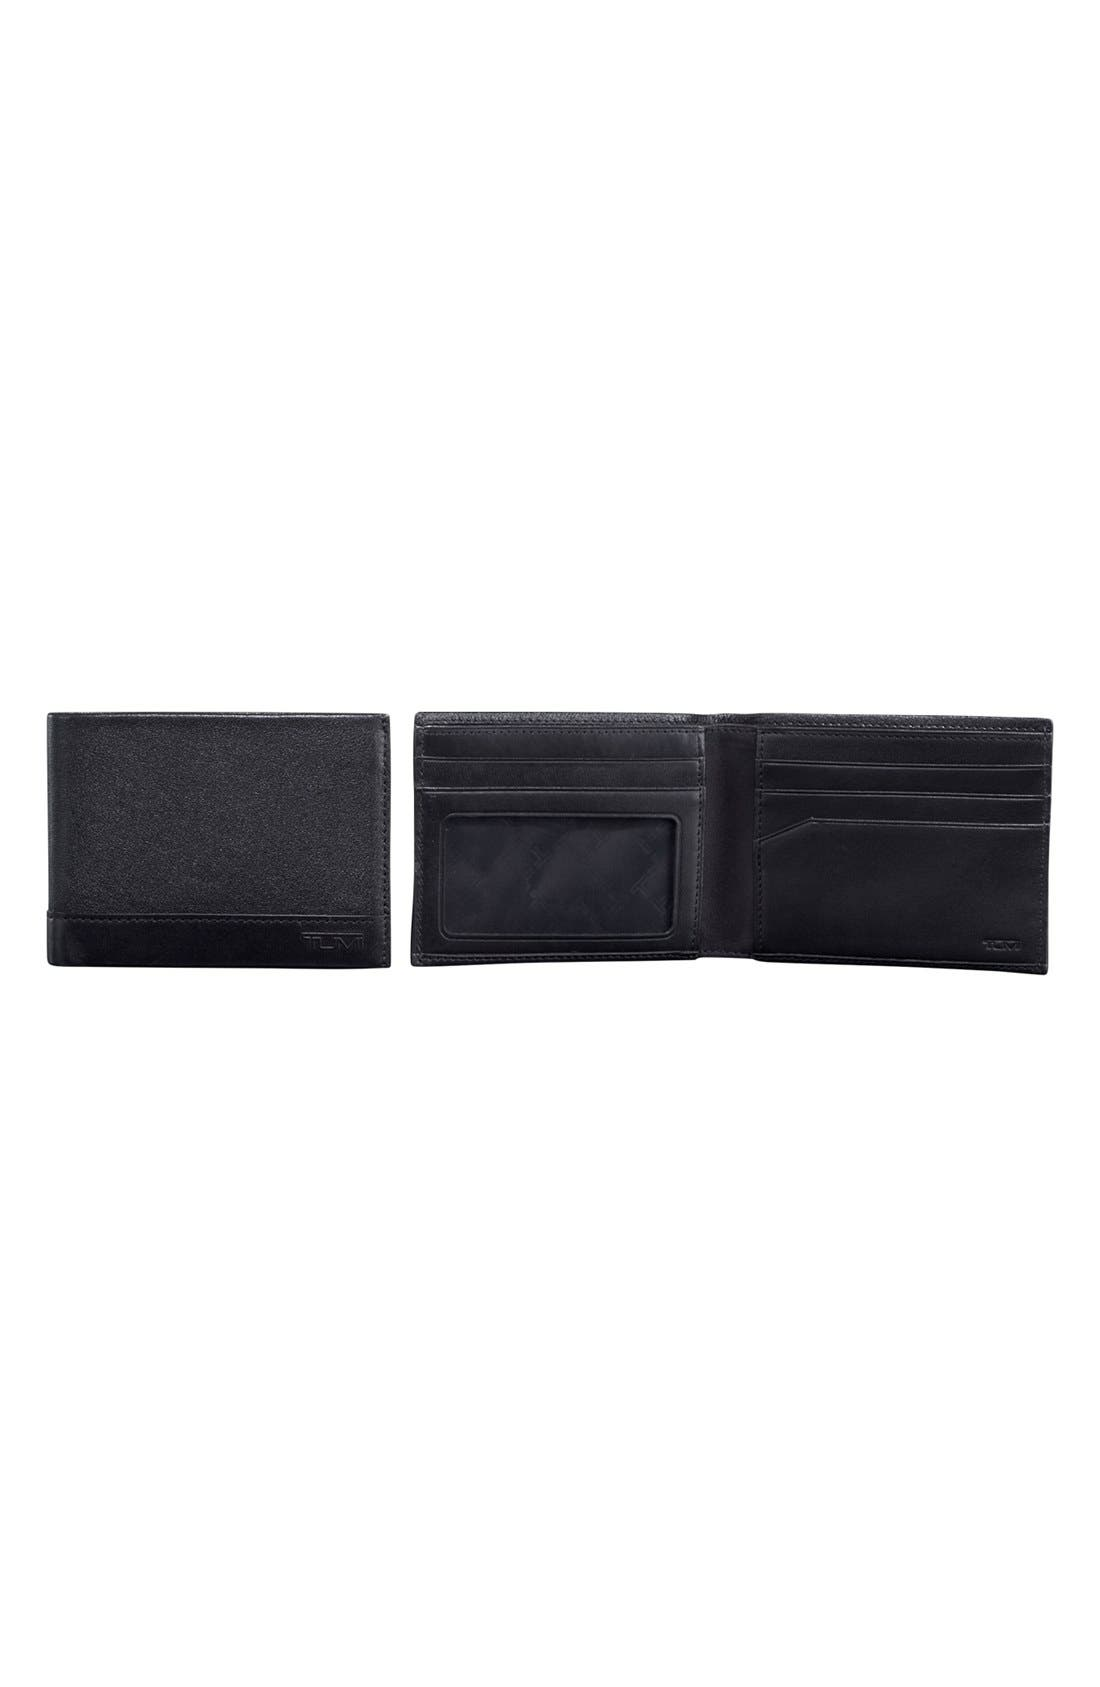 Alternate Image 1 Selected - Tumi 'Rivington' Leather Wallet